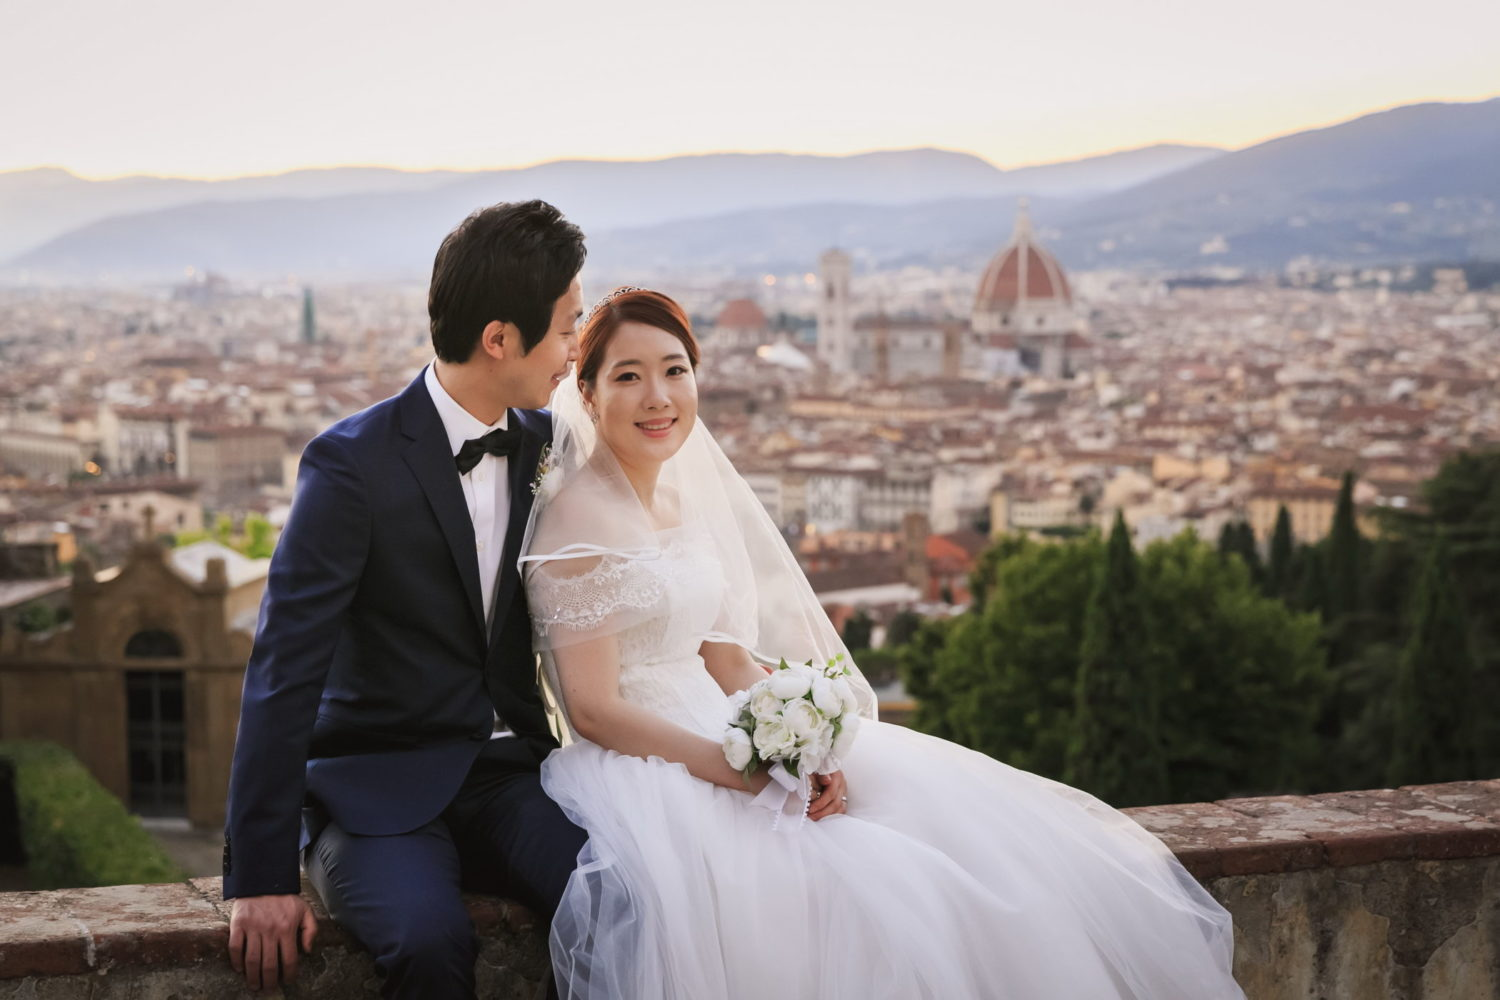 Dolce Italia Firenze Engagement Honeymoon Wedding Photo Shoot